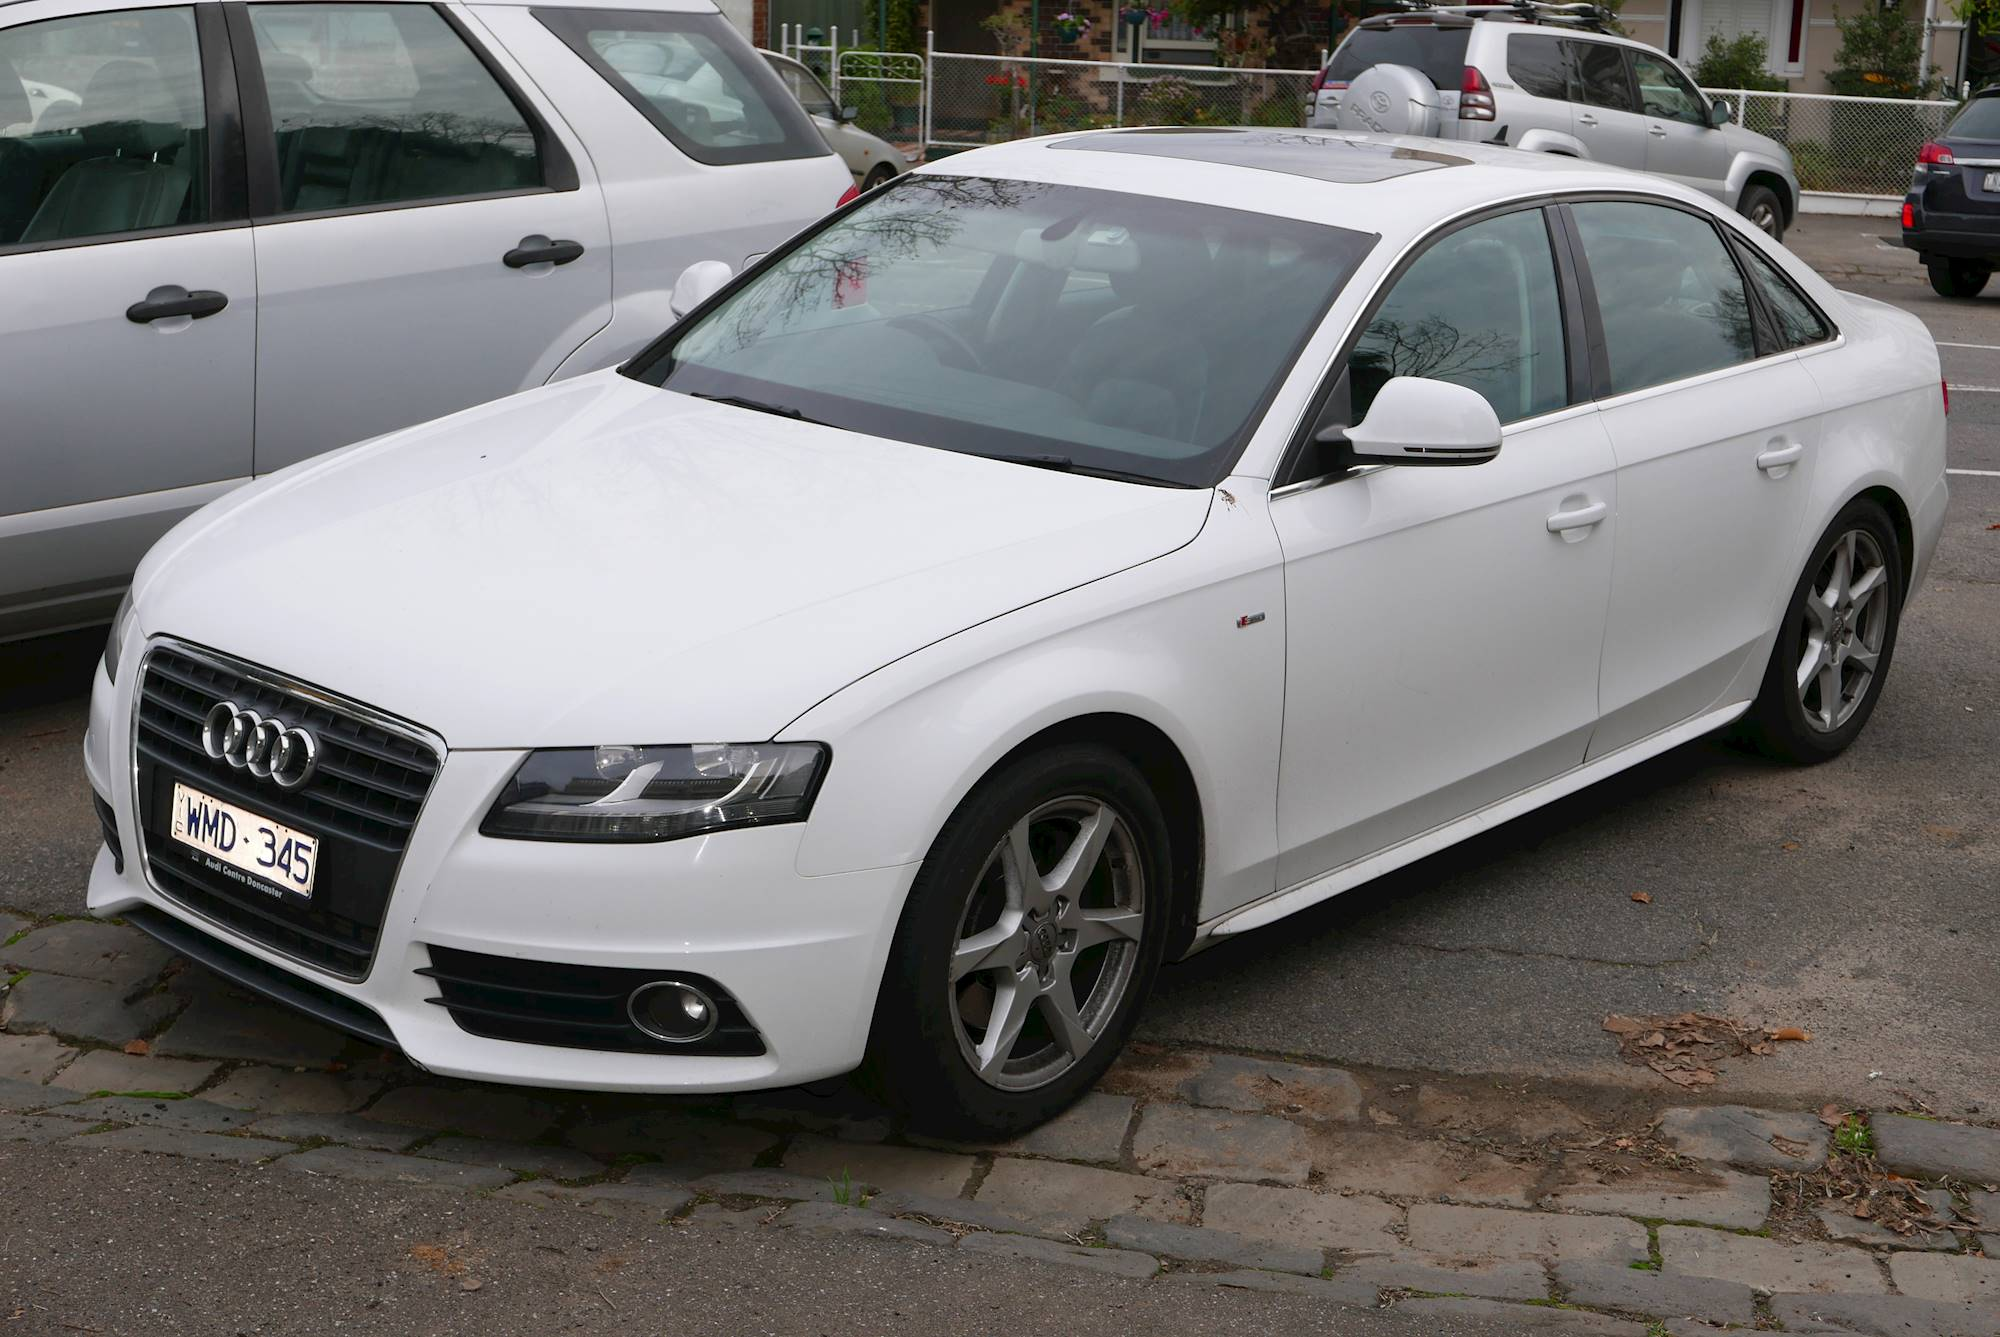 2008 Audi A4 2 0T Avant Special Edition 4dr All wheel Drive quattro